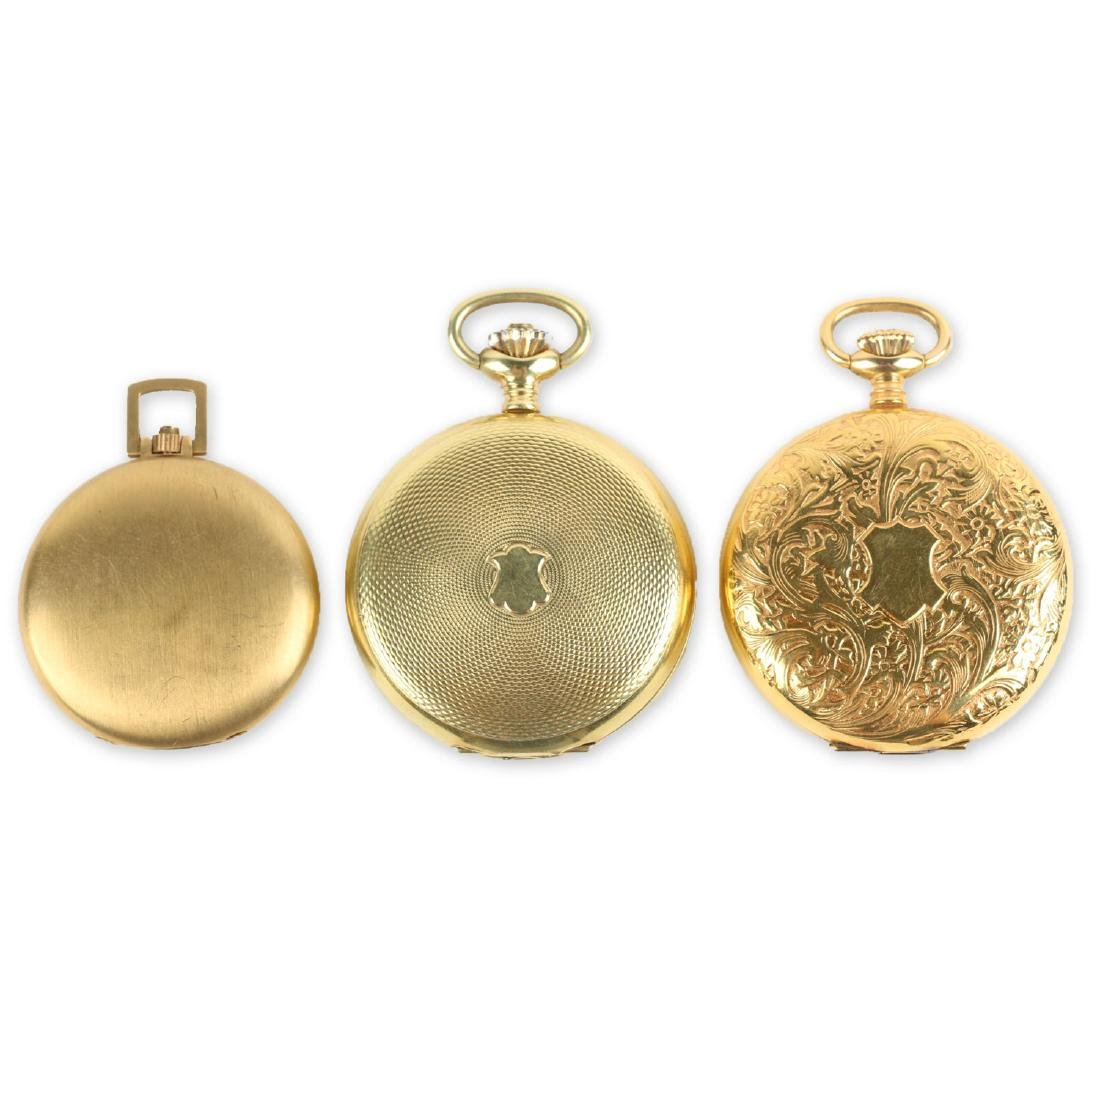 Three (3) Contemporary Hunting Case Pocket Watches